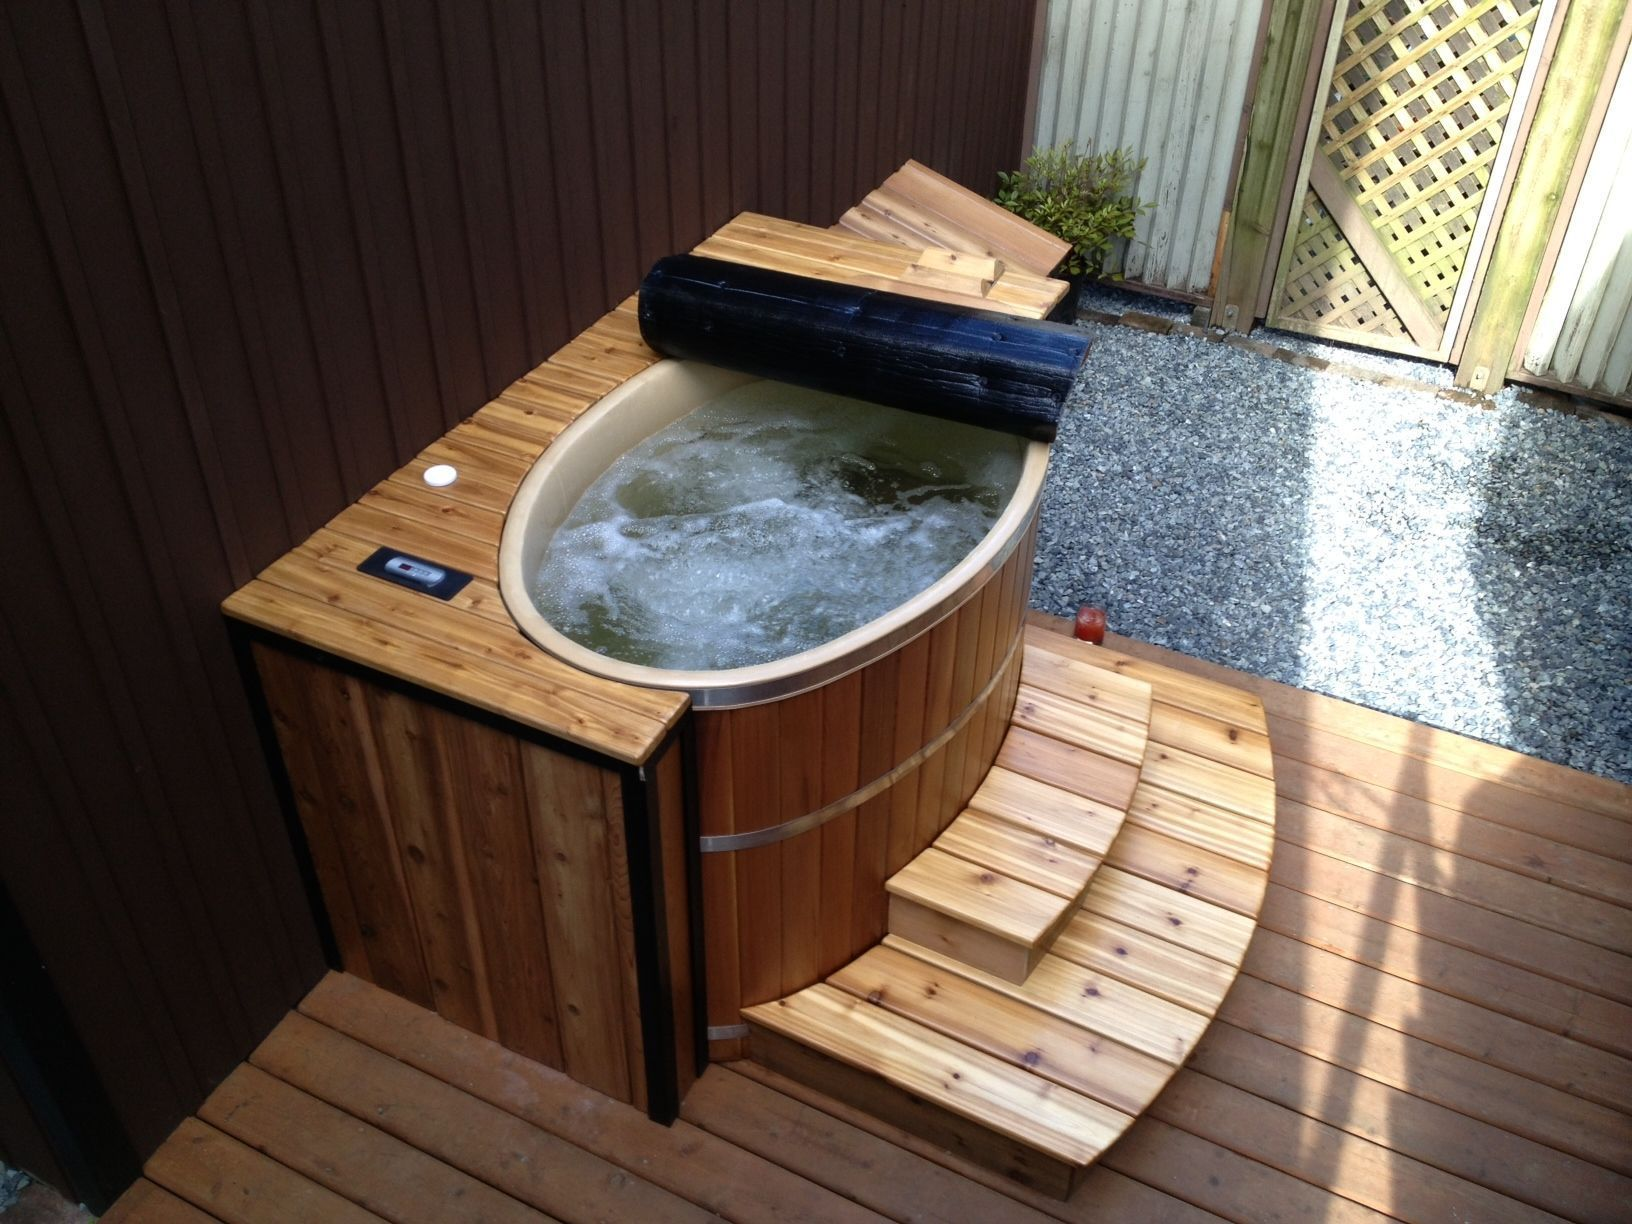 A Tub For 2 Oval Cedar Hot Tub Is Perfect For Small Spaces More Ideas Hot Tub Outdoor Small Hot Tub Cedar Hot Tub